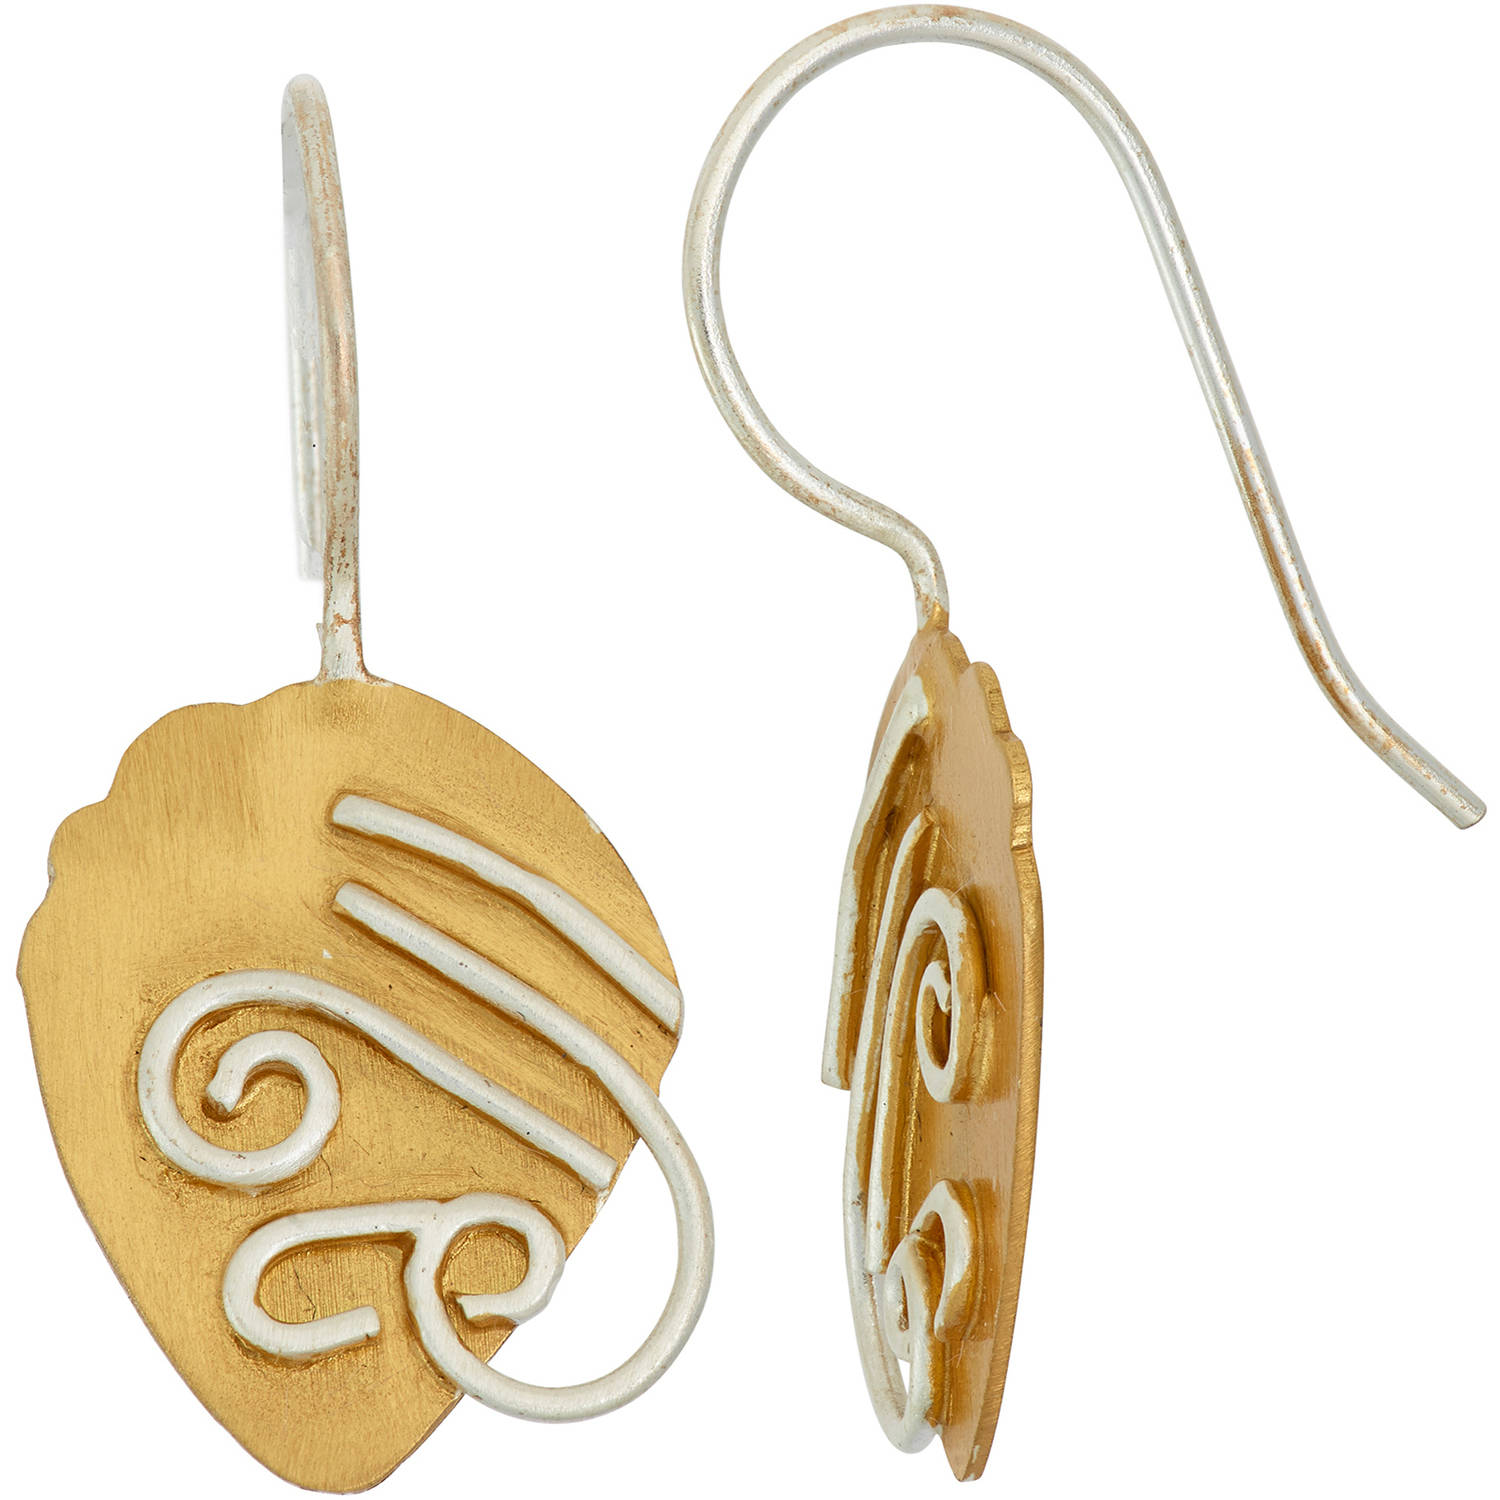 Image of 5th & Main 14kt Gold-Plated and Sterling Silver Acorn Earrings with Silver Scroll